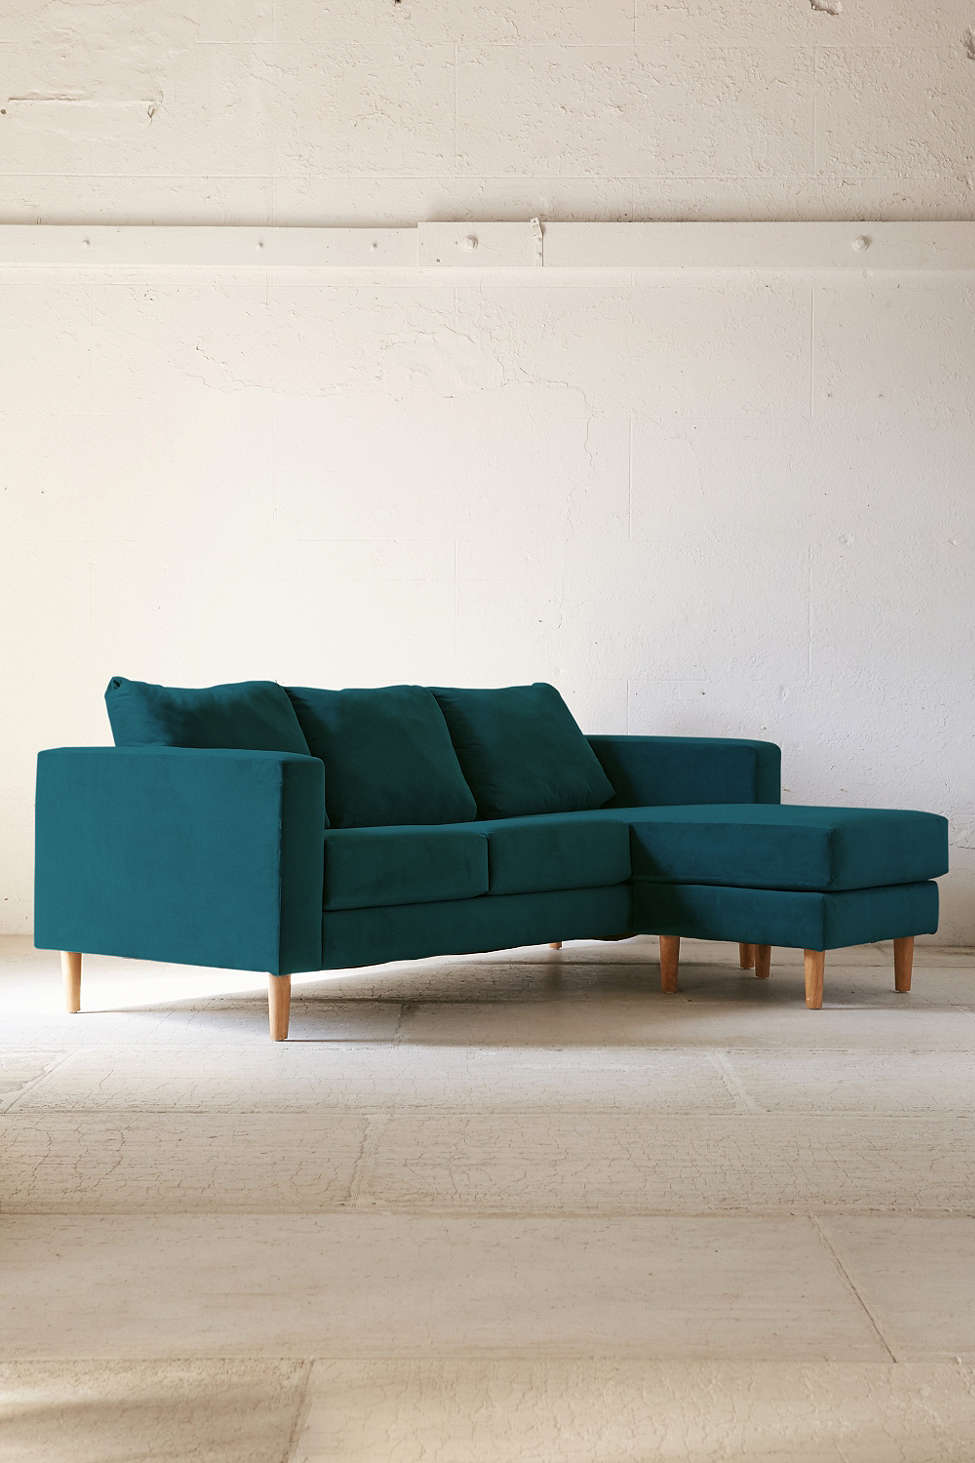 quincy-chaise-sectional-sofa-urban-outfitters.jpg